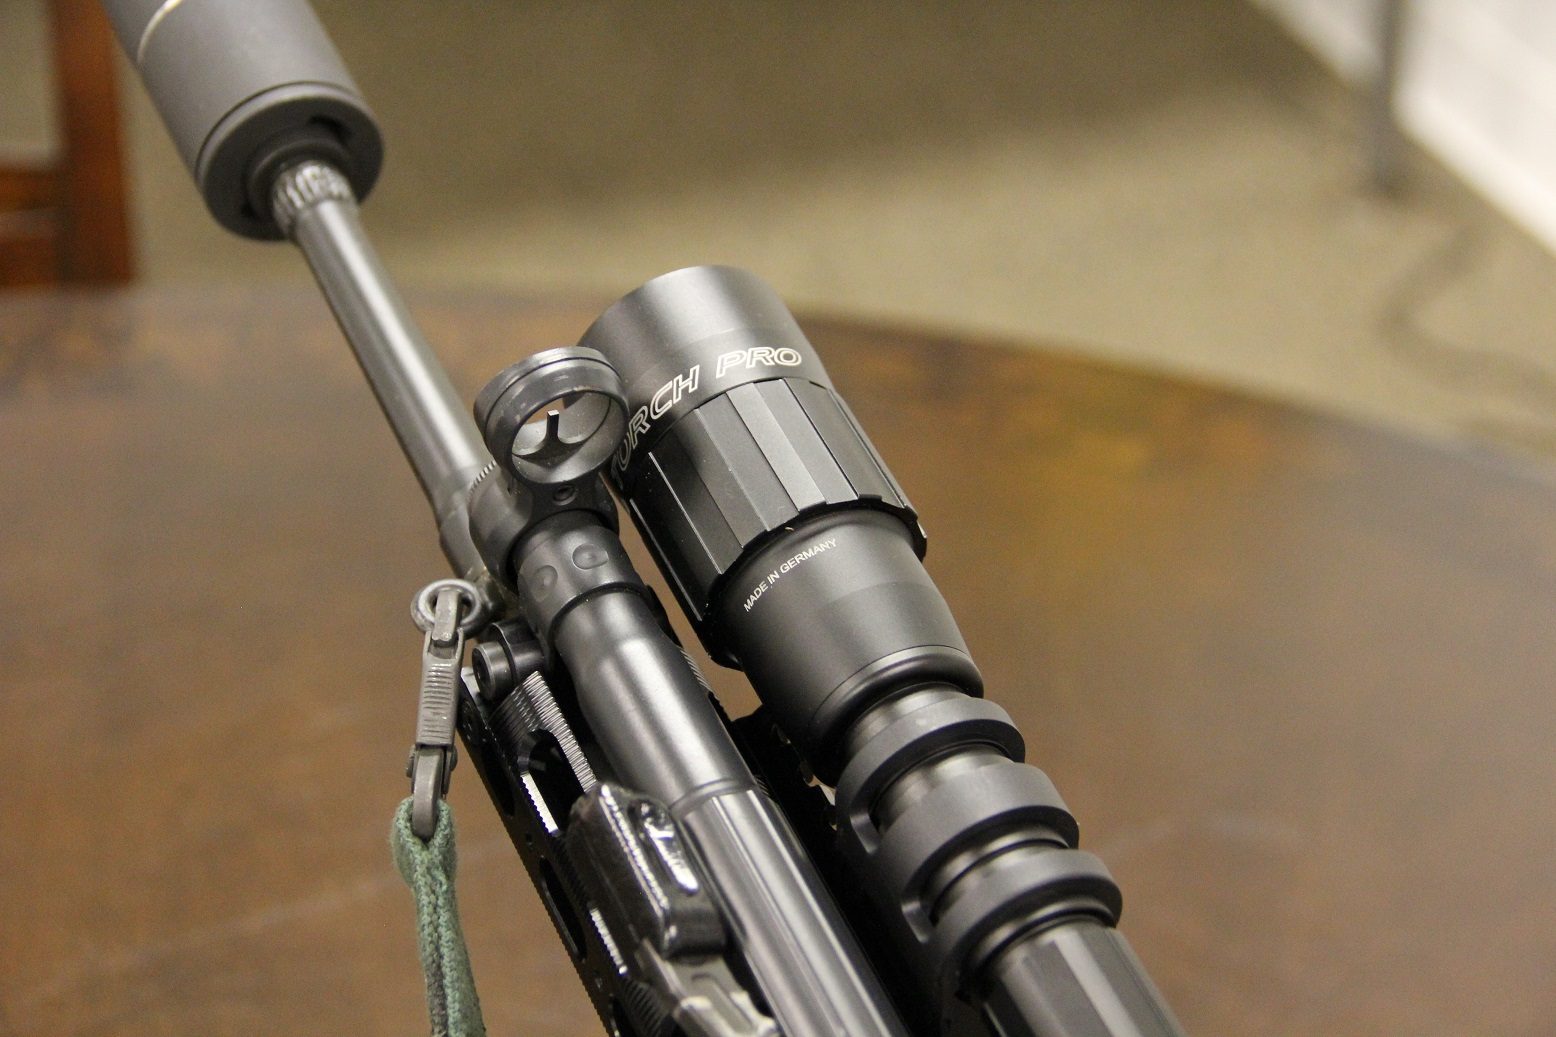 Hunting hogs with night vision, a machine gun, and a suppressor